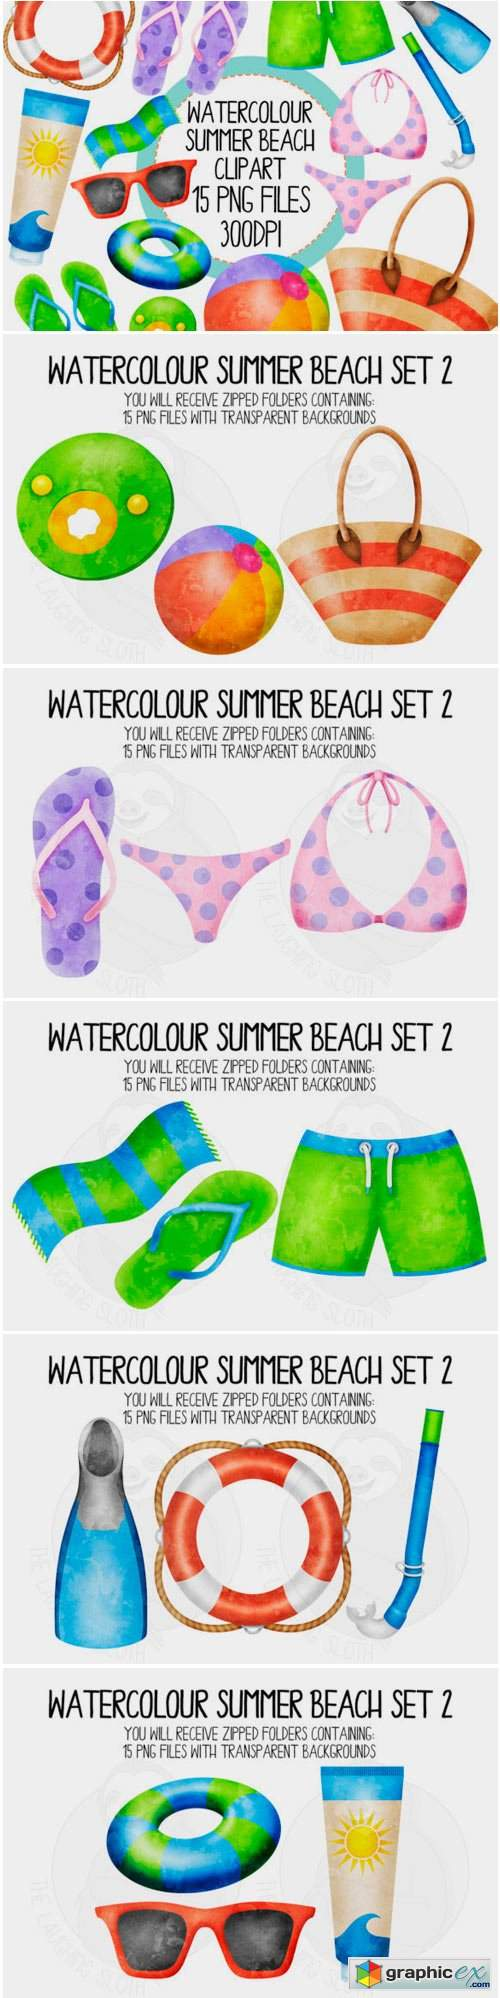 Watercolour Summer Beach Set 2